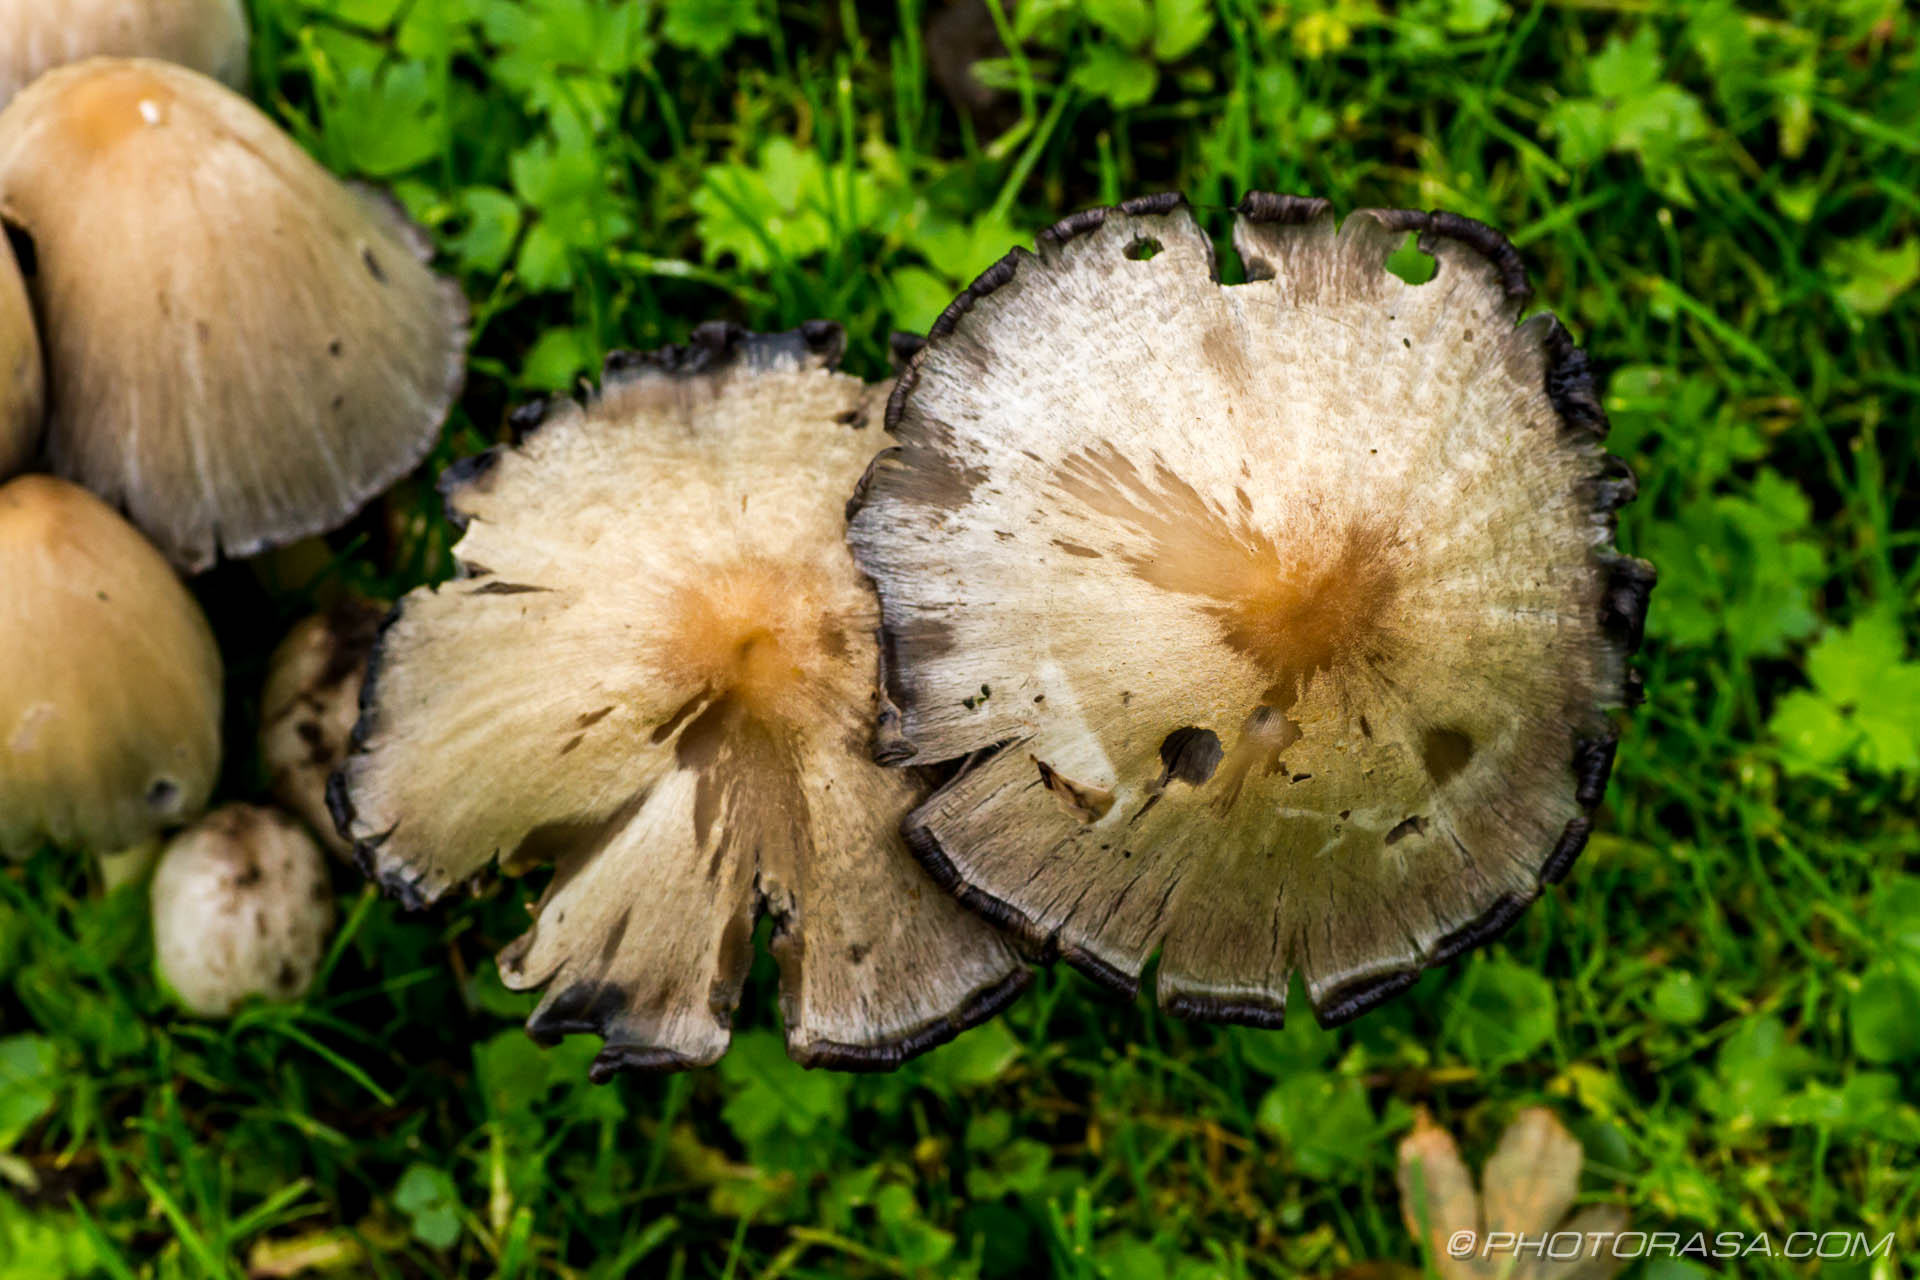 http://photorasa.com/common-ink-cap/mature-ink-caps-from-above/